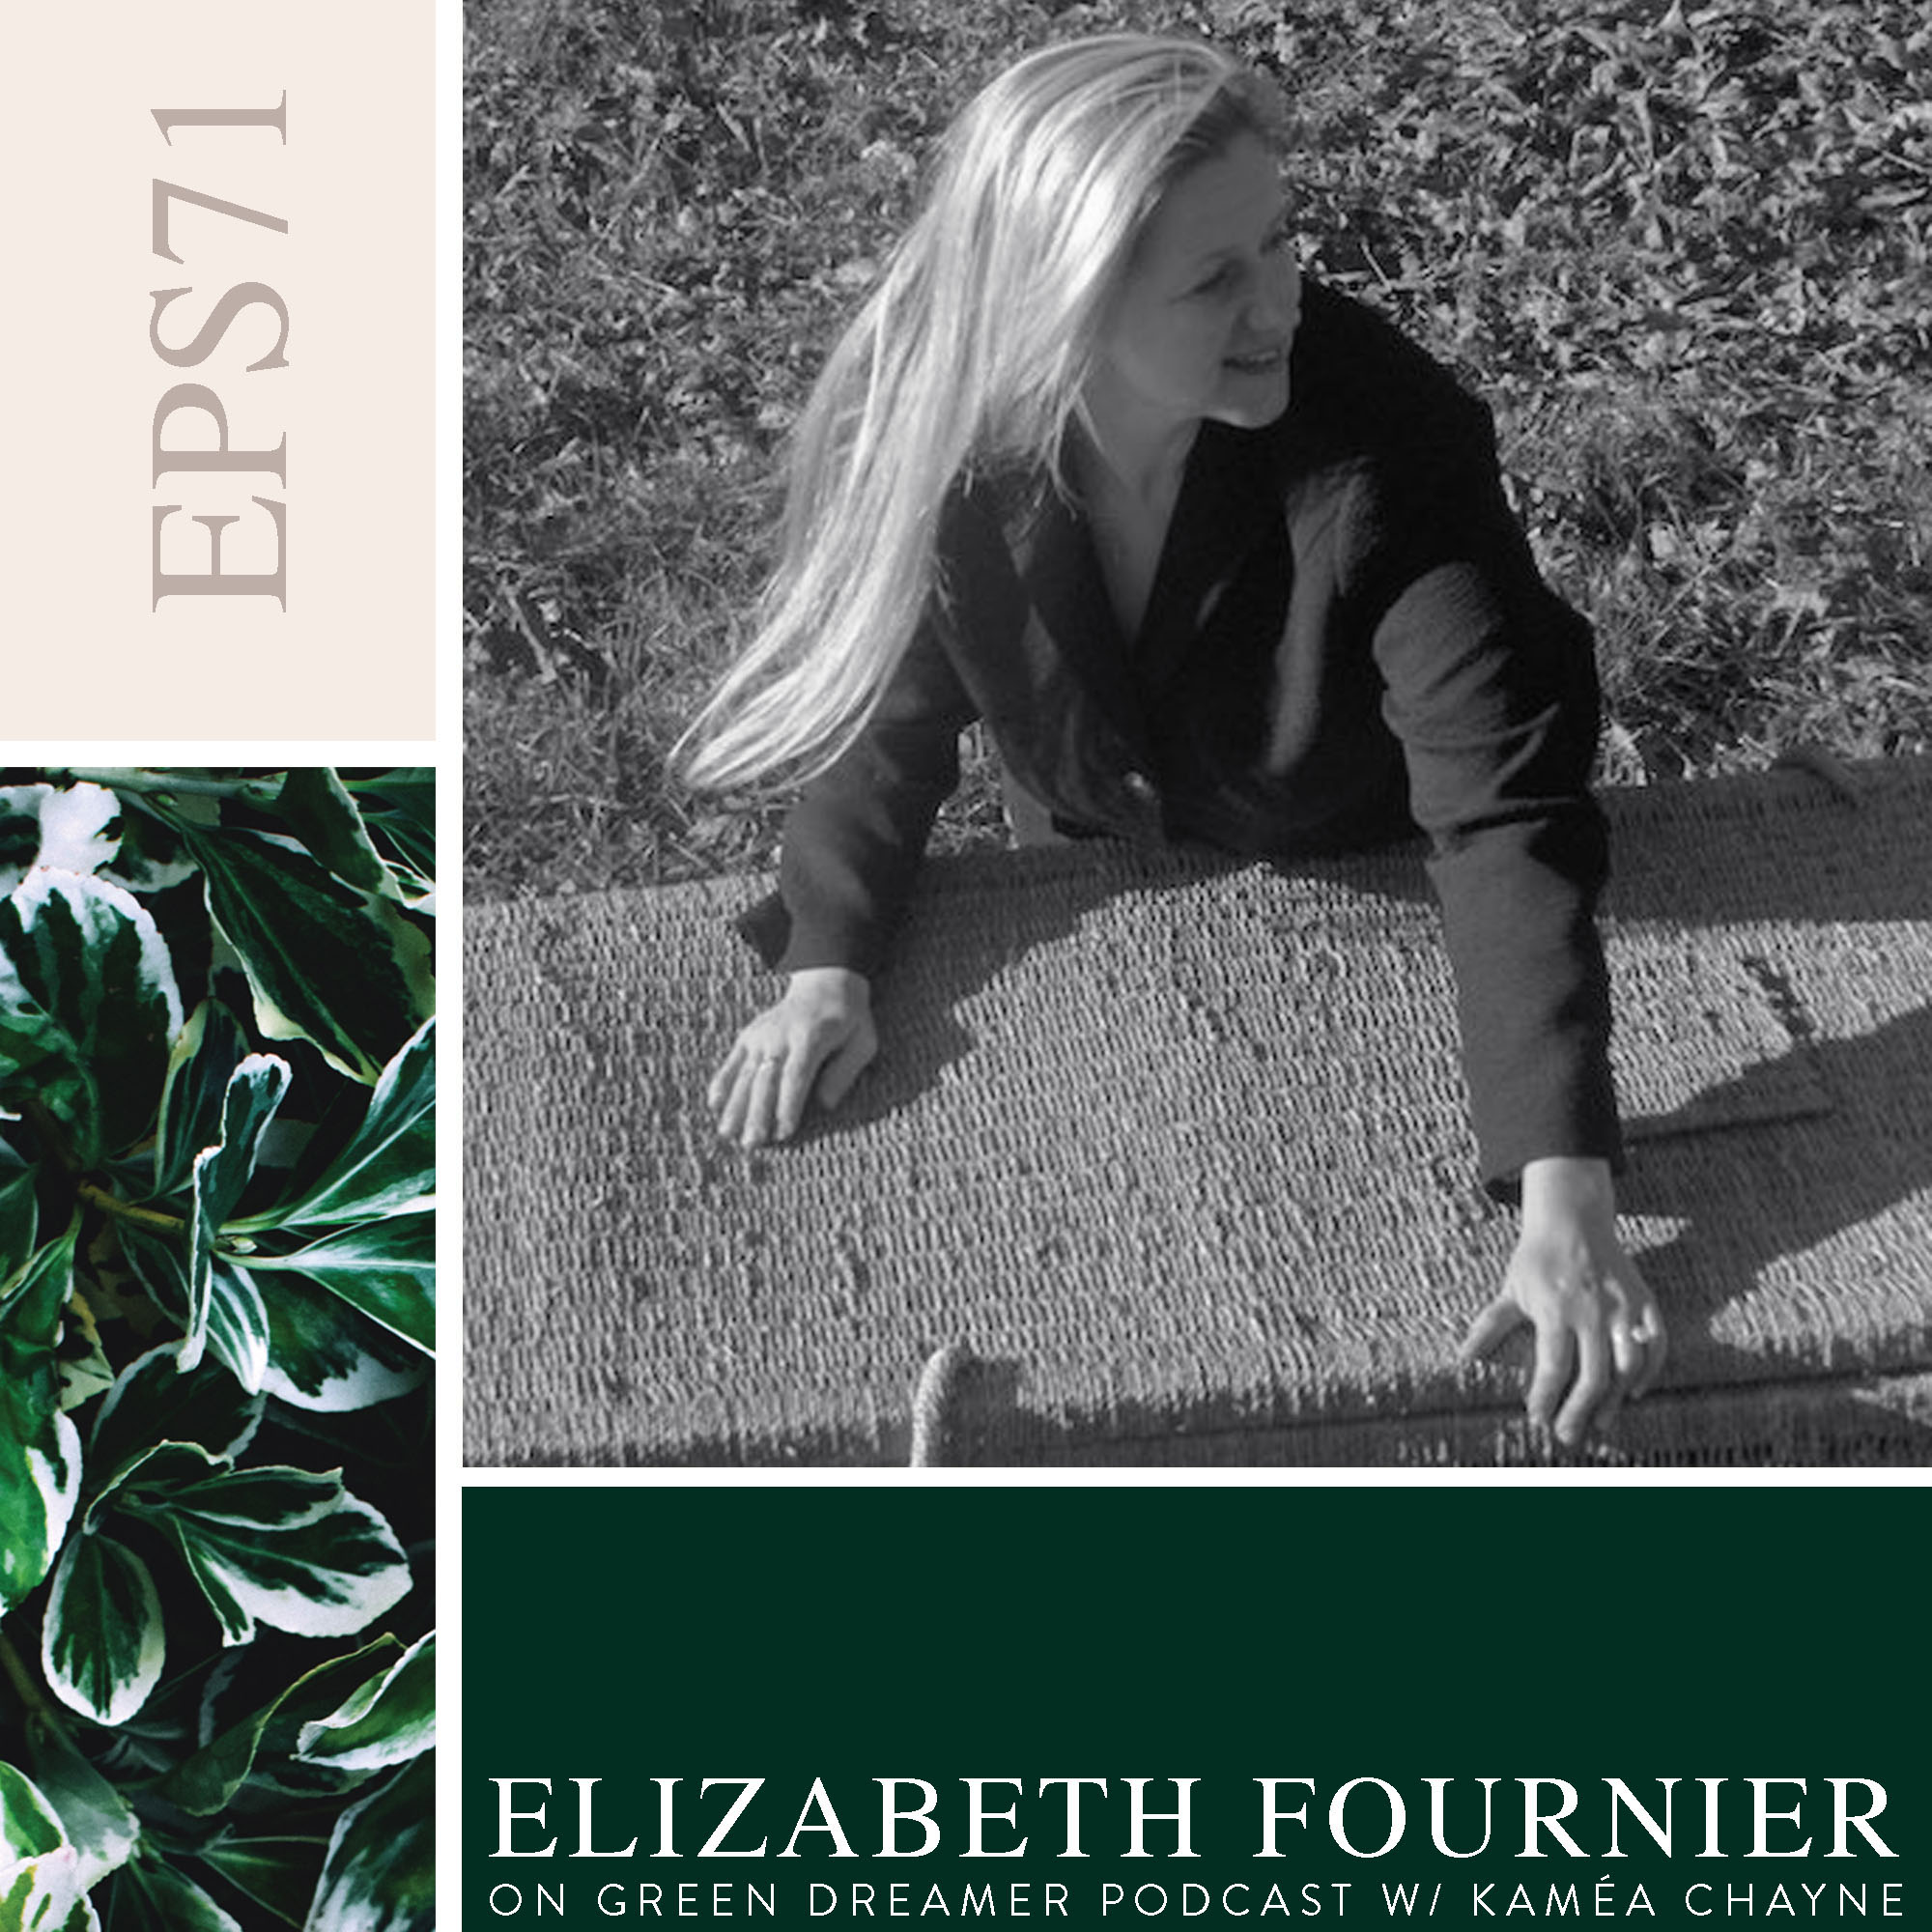 71-Show-Notes-Elizabeth-Fournier-of-Cornerstone-Funeral-Services-talks-sustainability-on-Green-Dreamer-Podcast-with-Kamea-Chayne.jpg